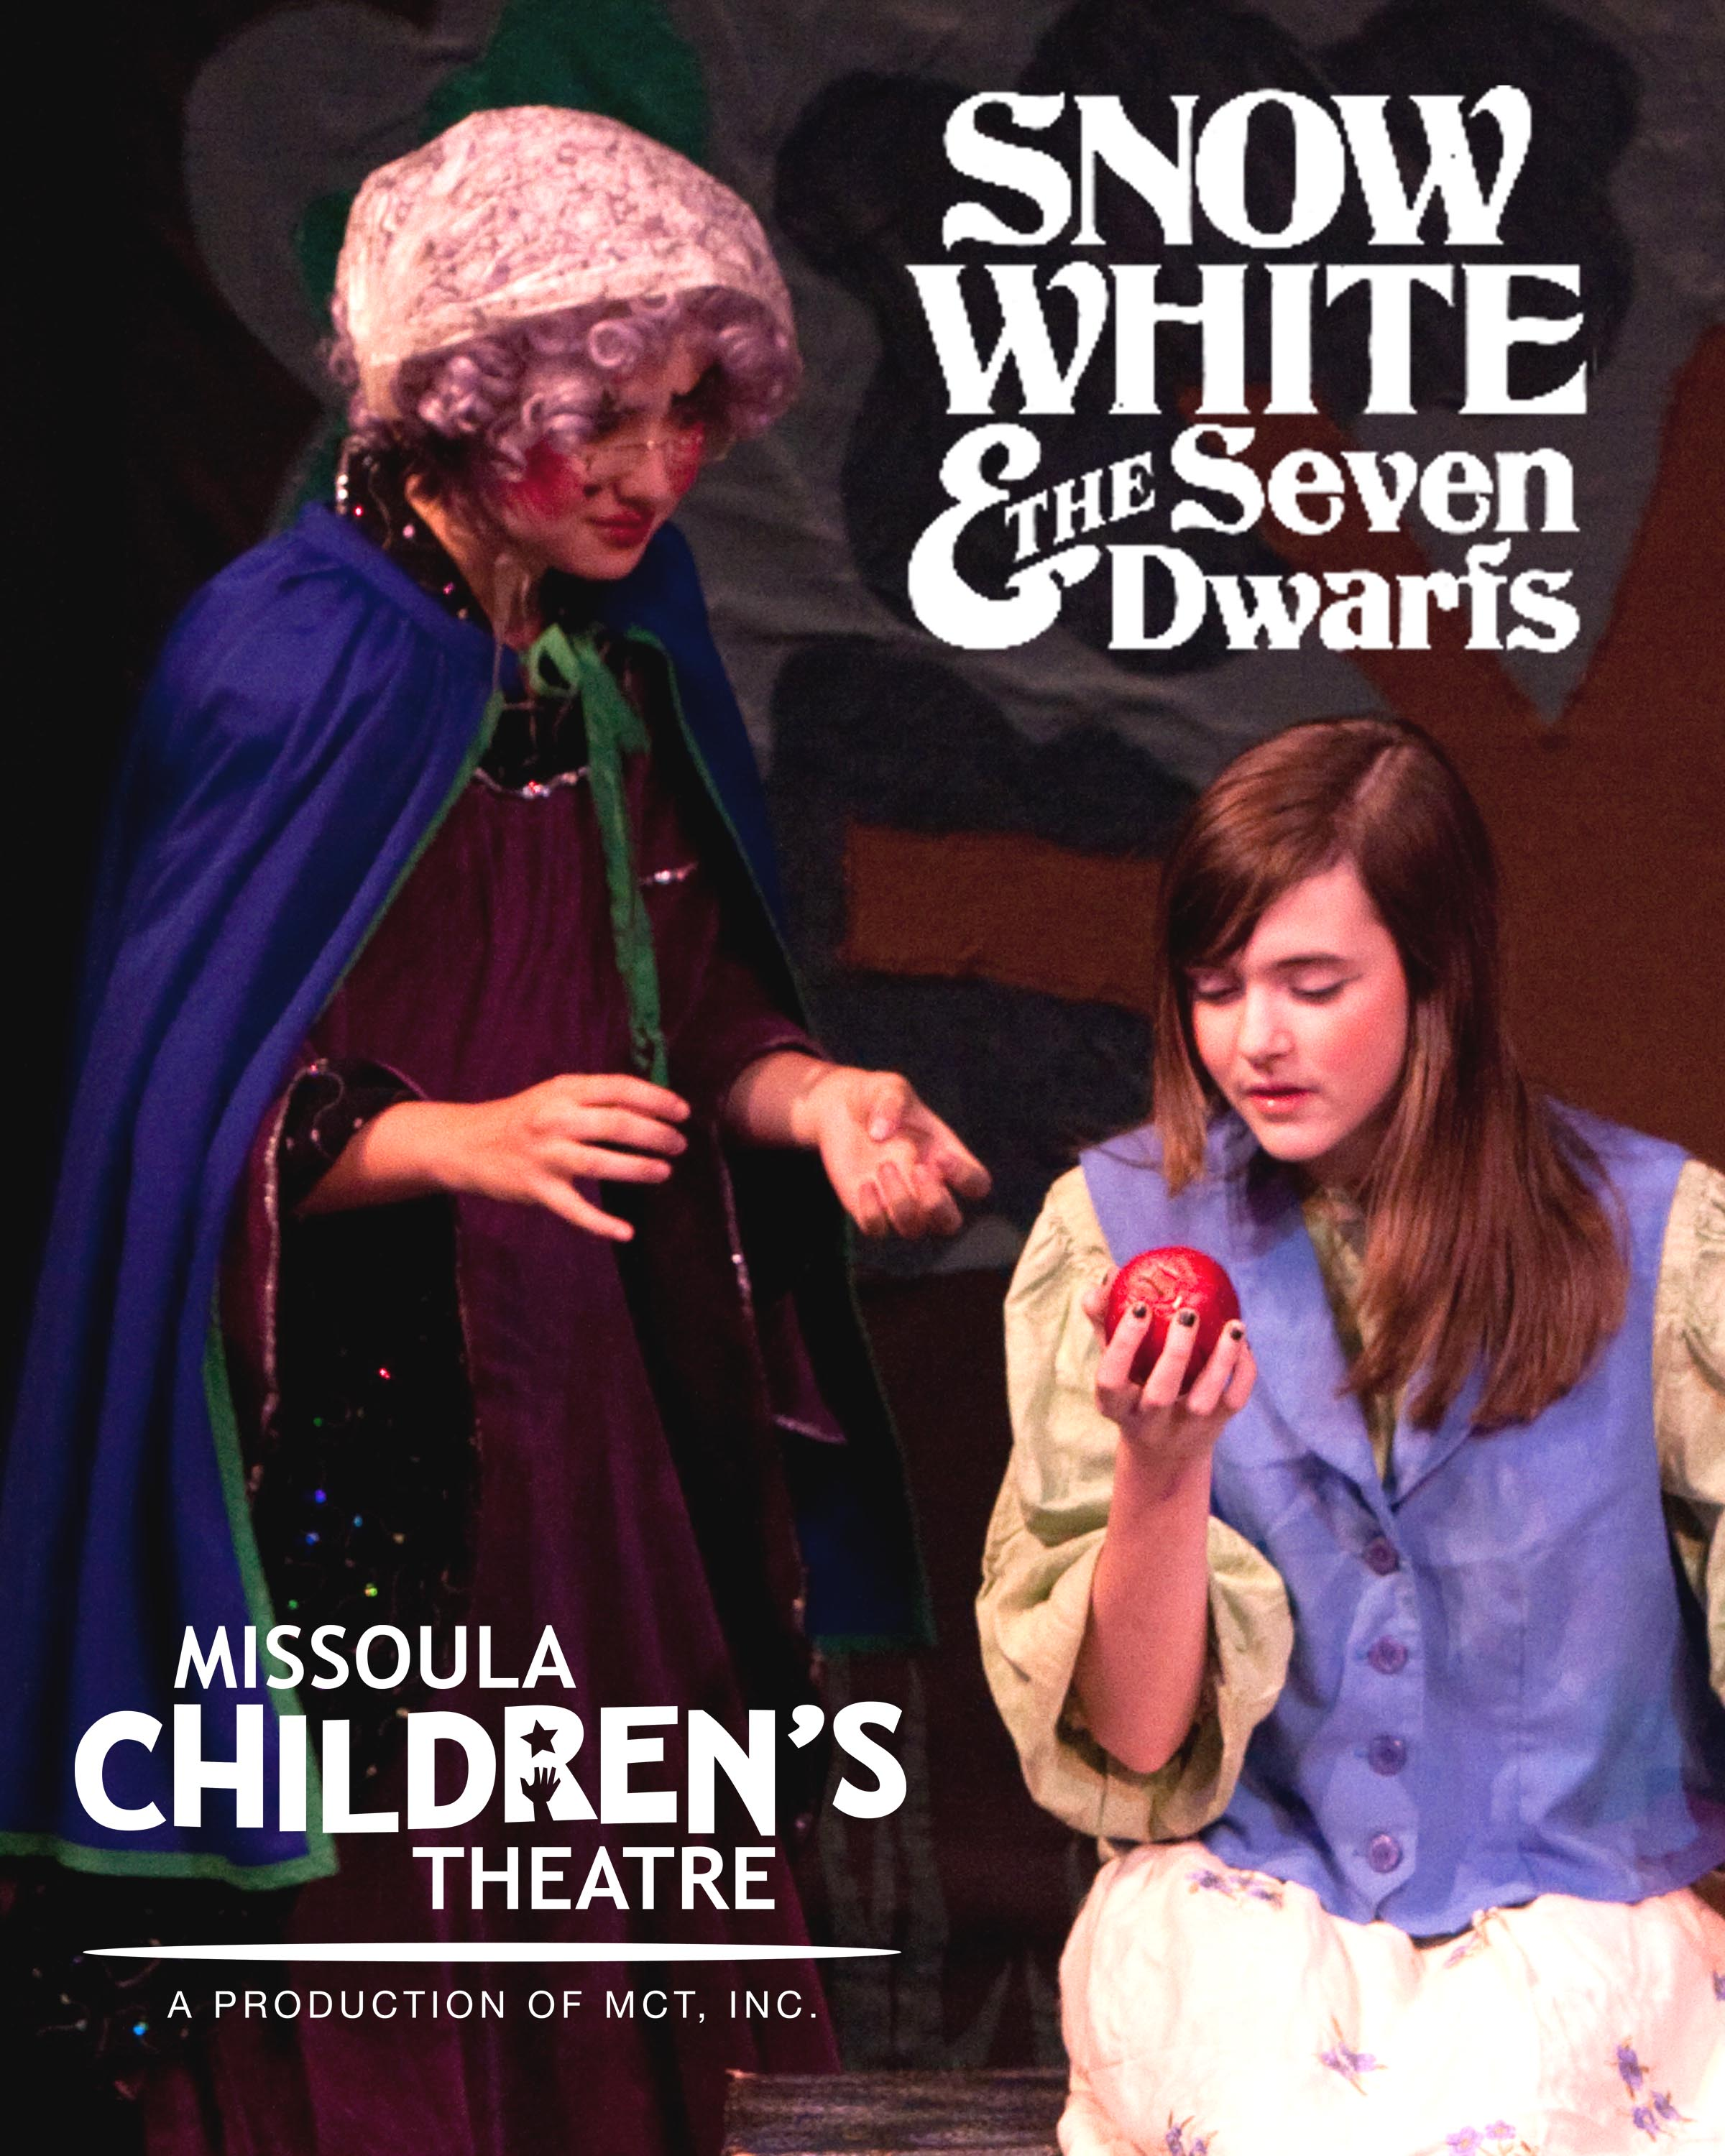 Venture into the terrifying Black Forest with Snow White and her friends this Friday, November, 9th when the Missoula Children's Theatre (MCT) and more than 50 local students perform SNOW WHITE & THE SEVEN DWARFS.